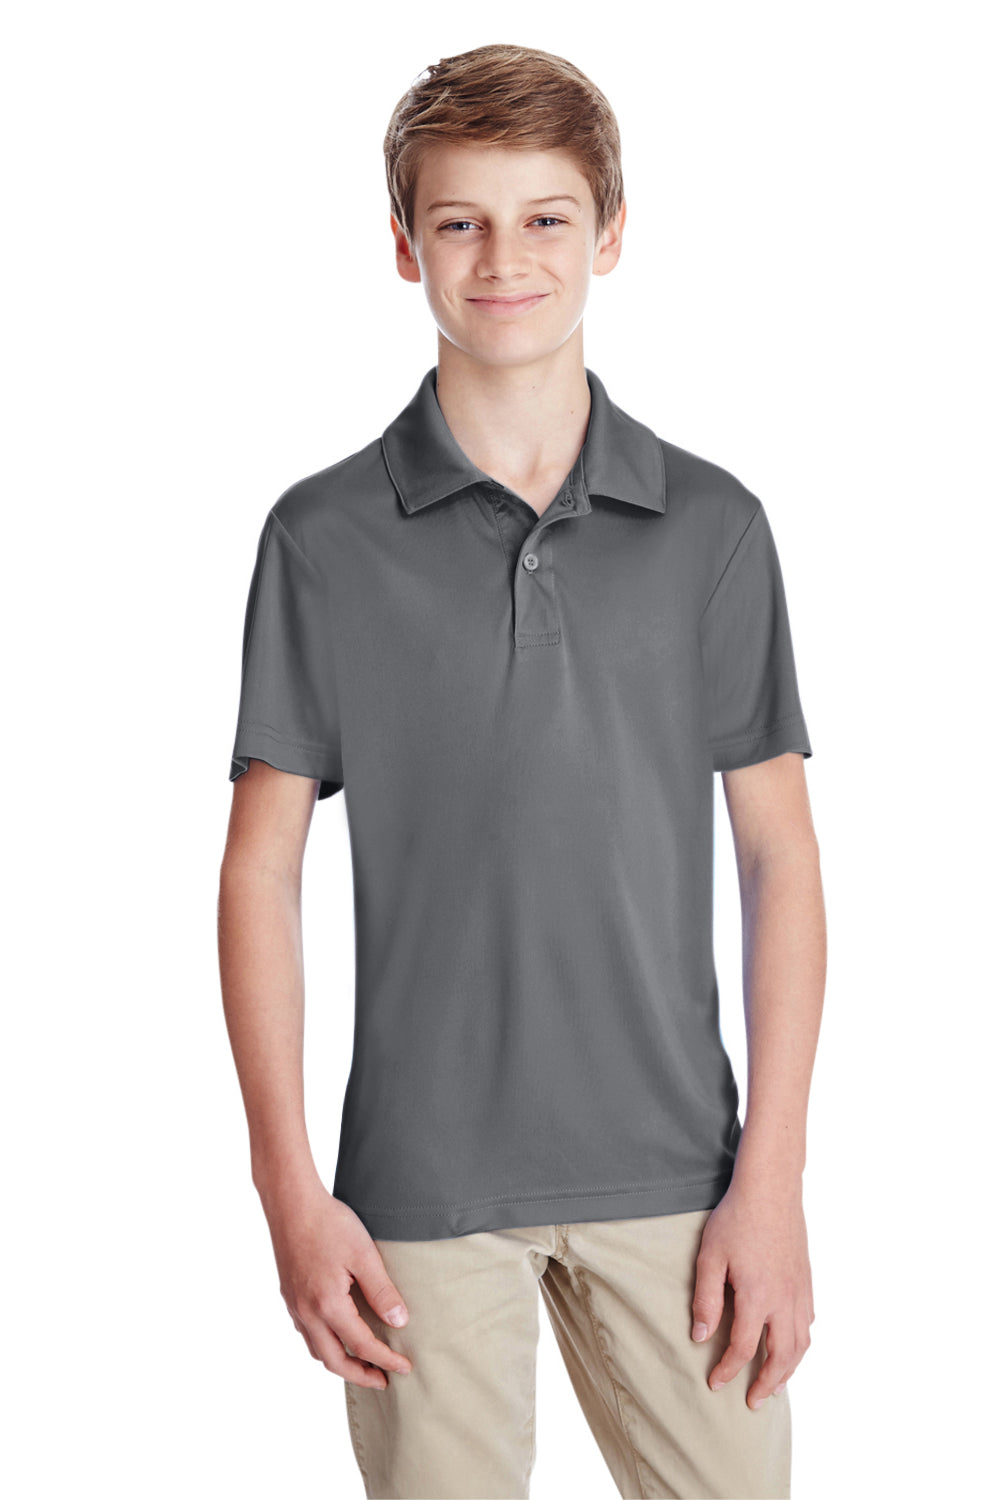 Team 365 TT51Y Youth Zone Performance Moisture Wicking Short Sleeve Polo Shirt Graphite Grey Front